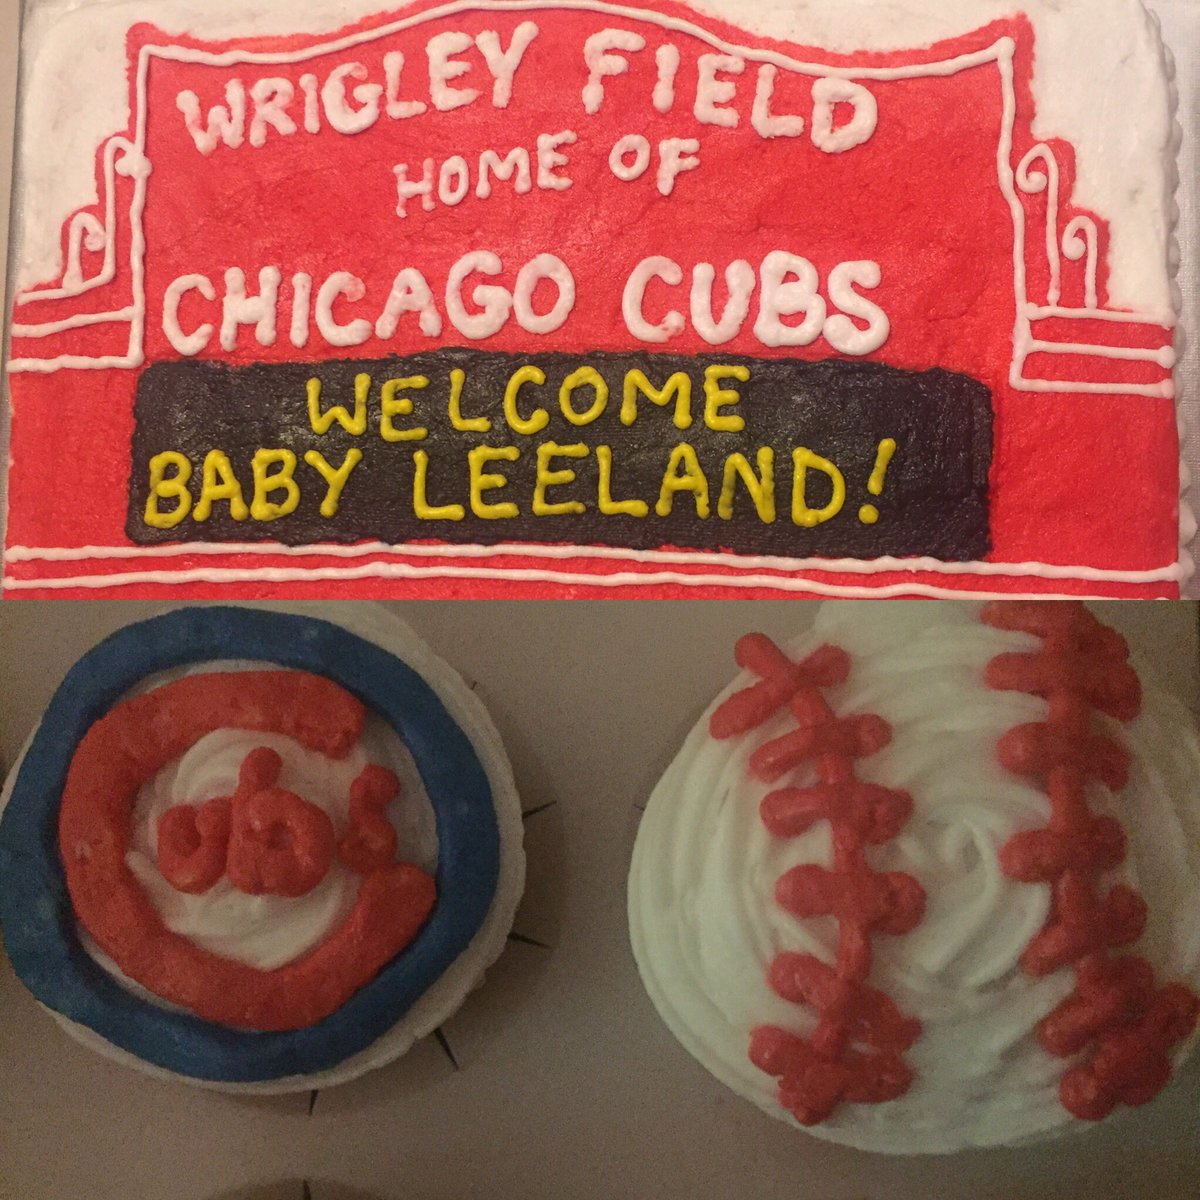 My uber talented wife's latest cake creation... @Cubs #Cubs #WrigleyFi...